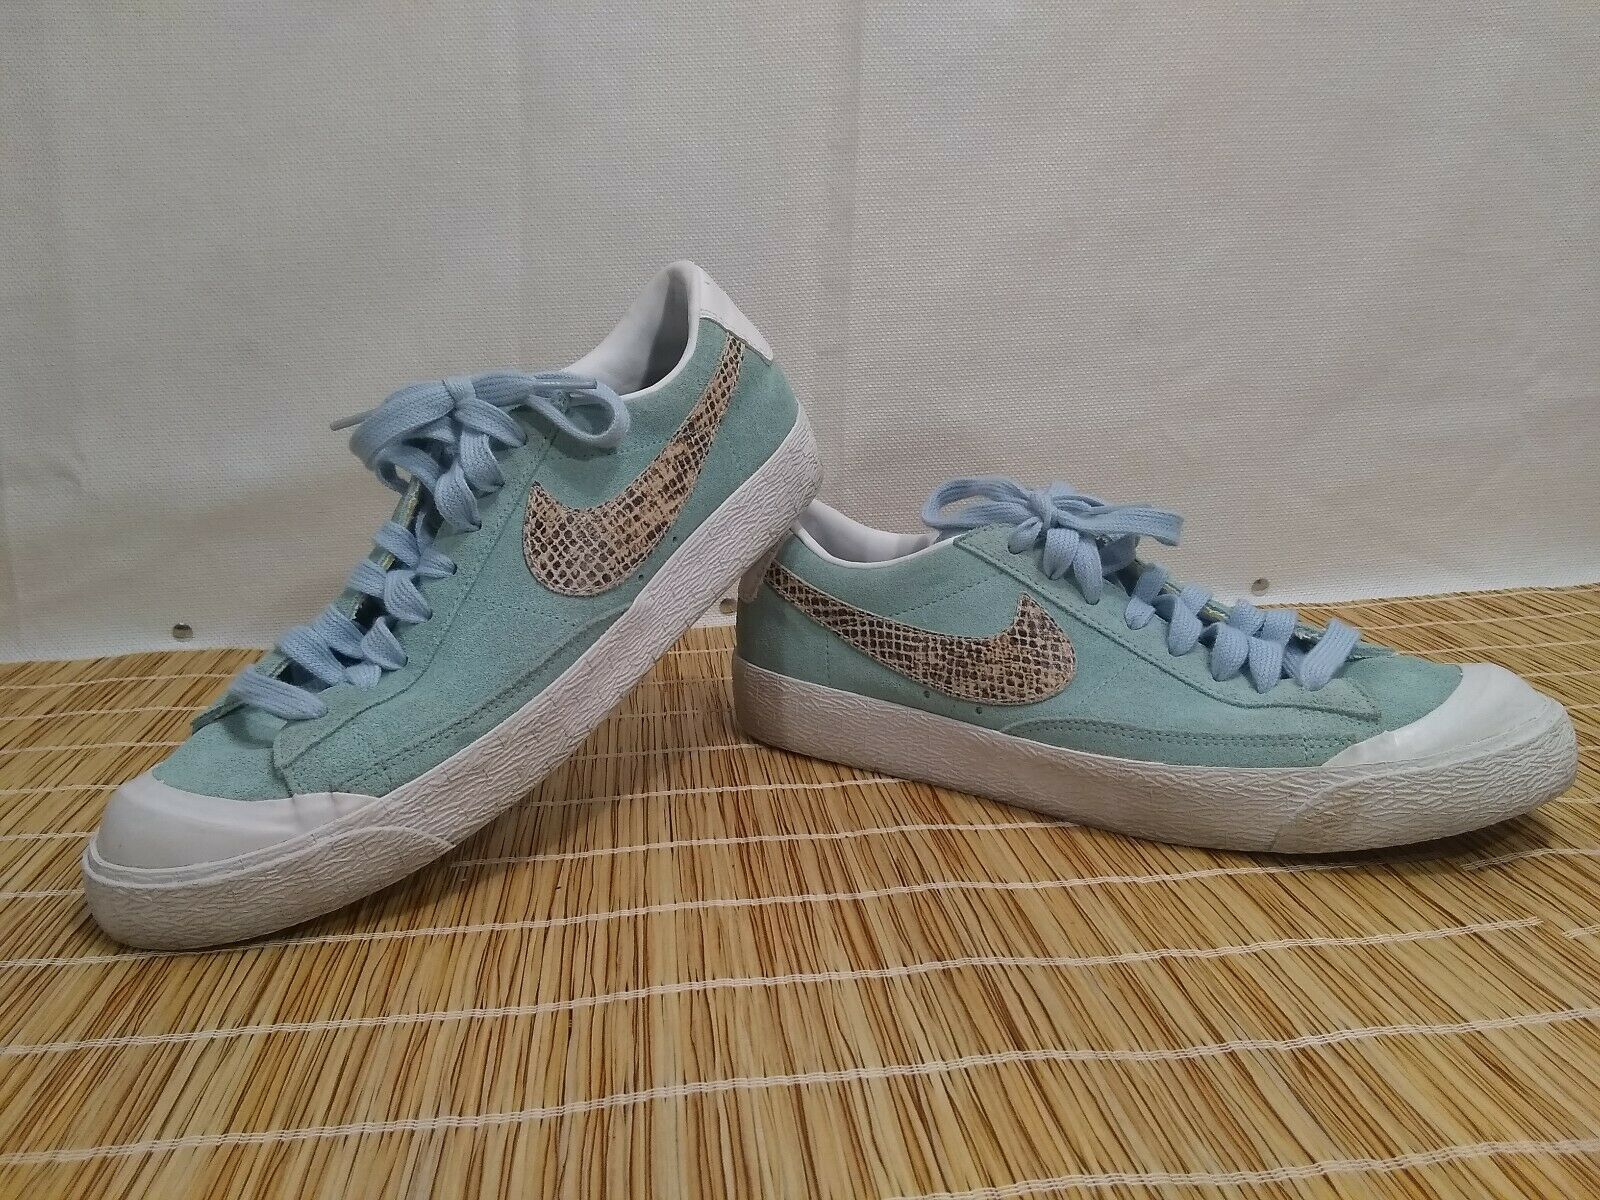 Nike Blazer Low iD Sea Green Leather Sneakers shoes MENS US 9 616828-991